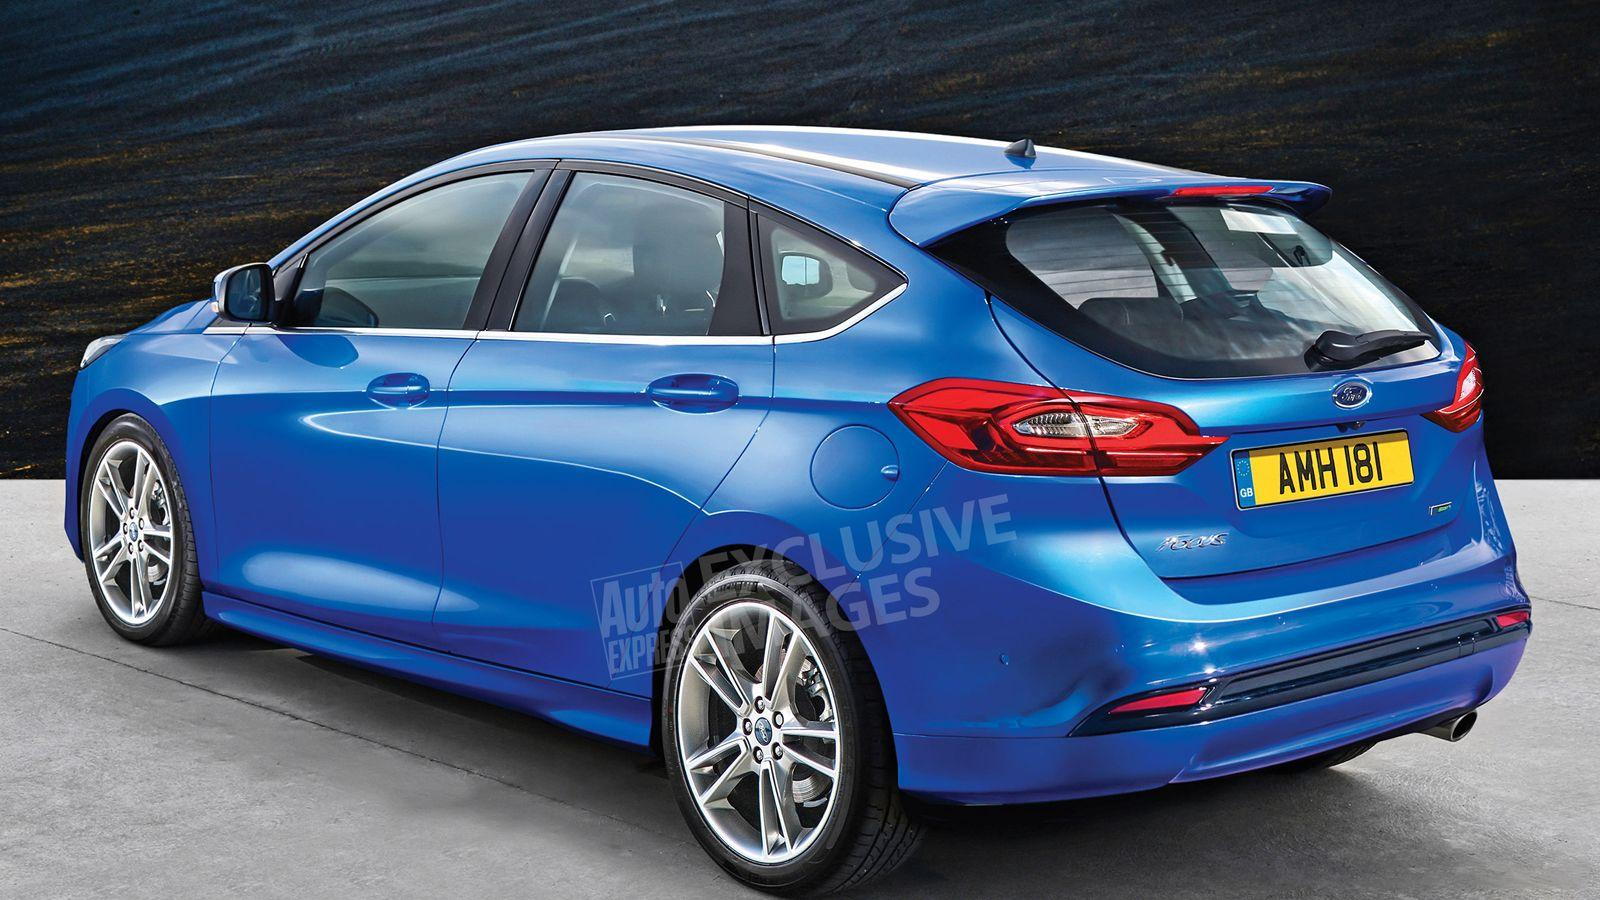 Brand new focus revealed today - Which Mobility Car Forum